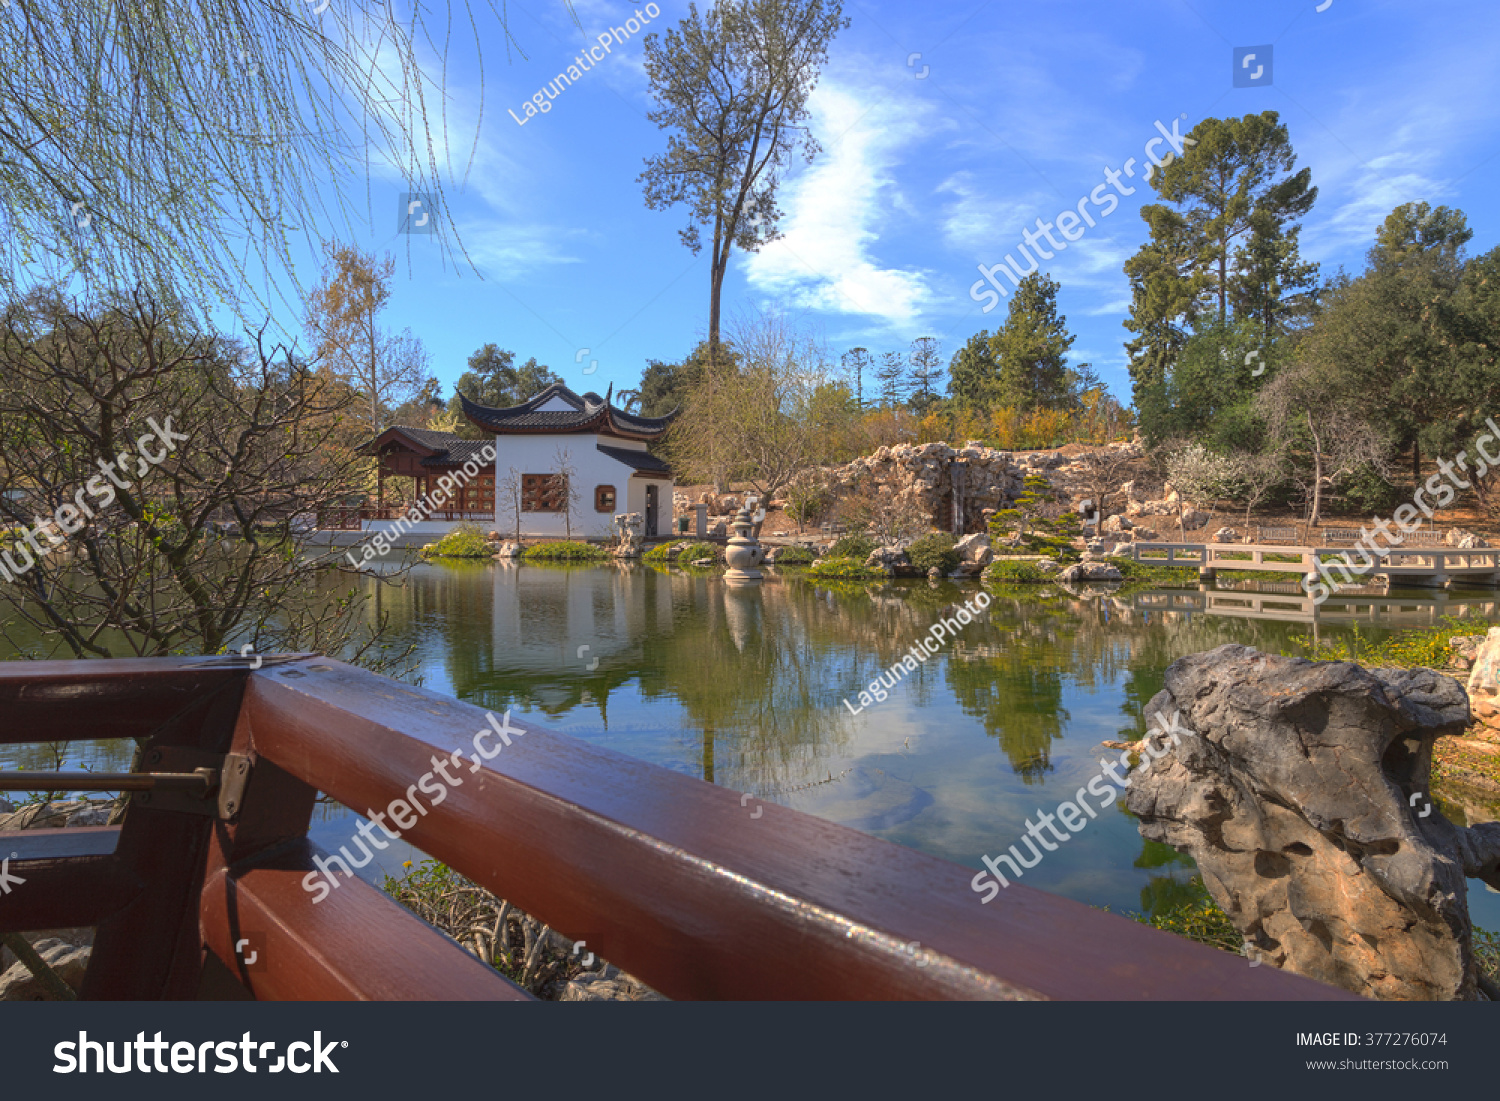 Los Angeles California February 14 2016 Chinese Botanical Garden At The Huntington Botanical